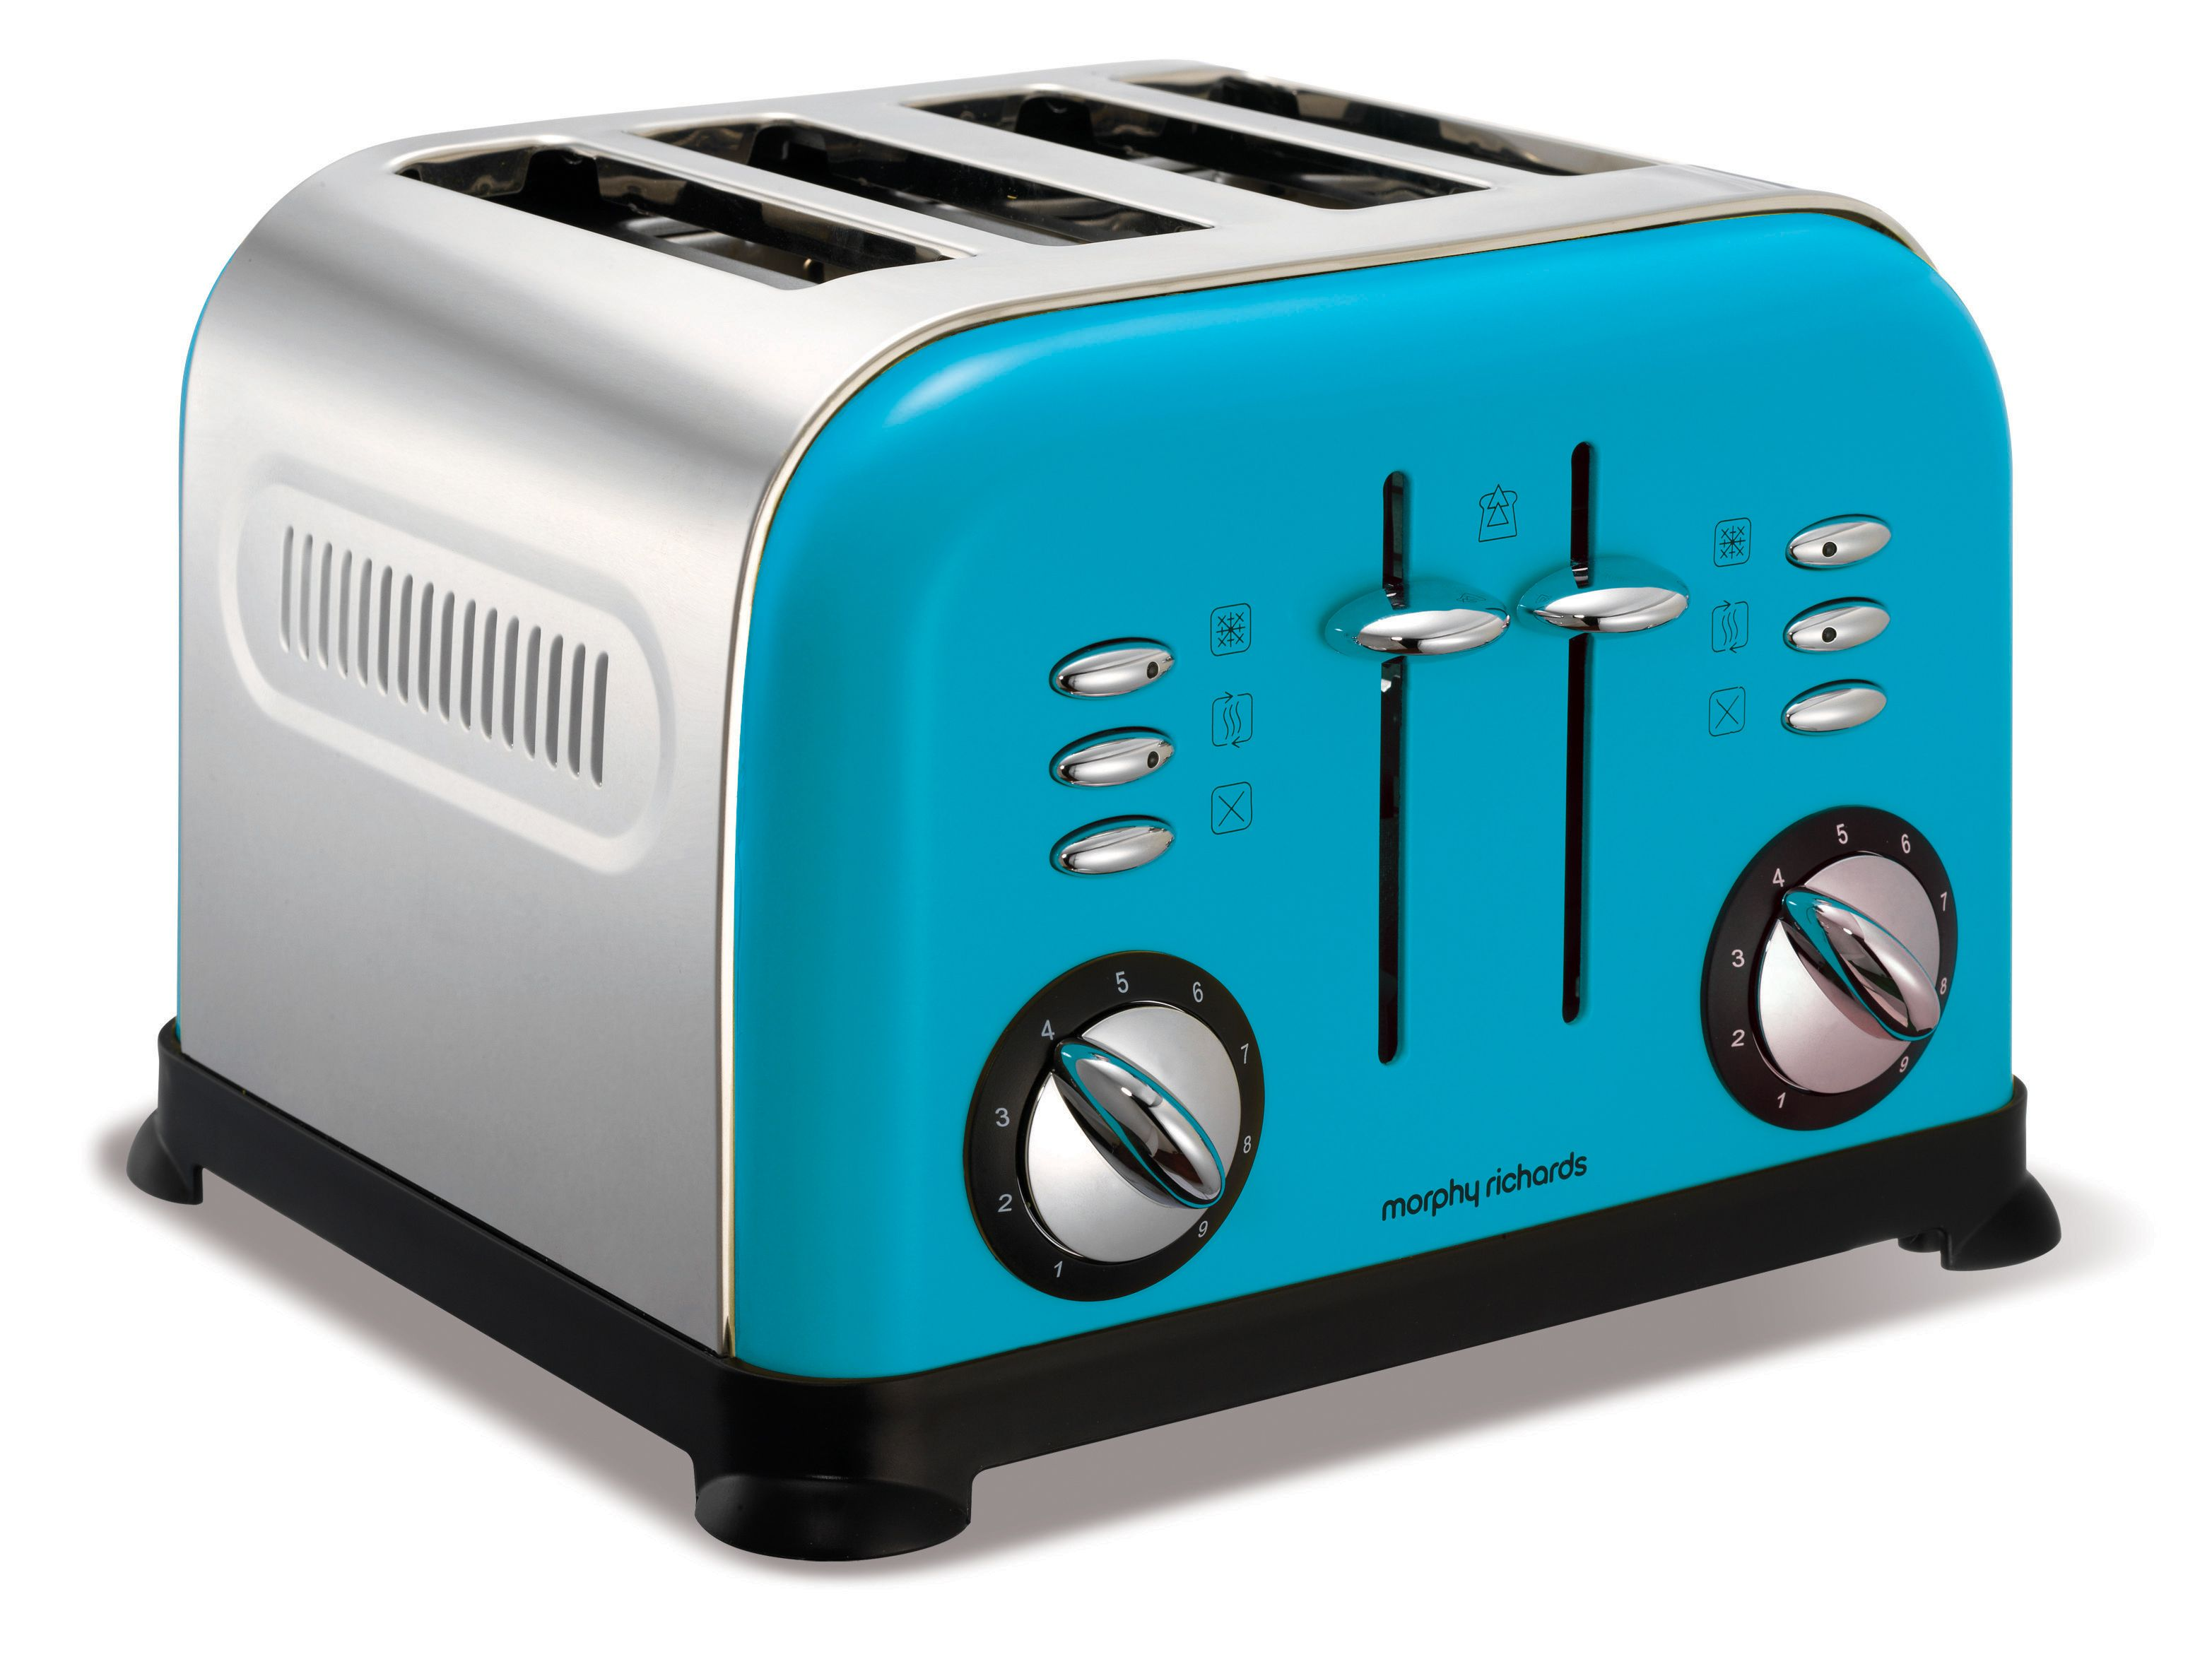 recall australia safety ltd pty product target toaster four slice